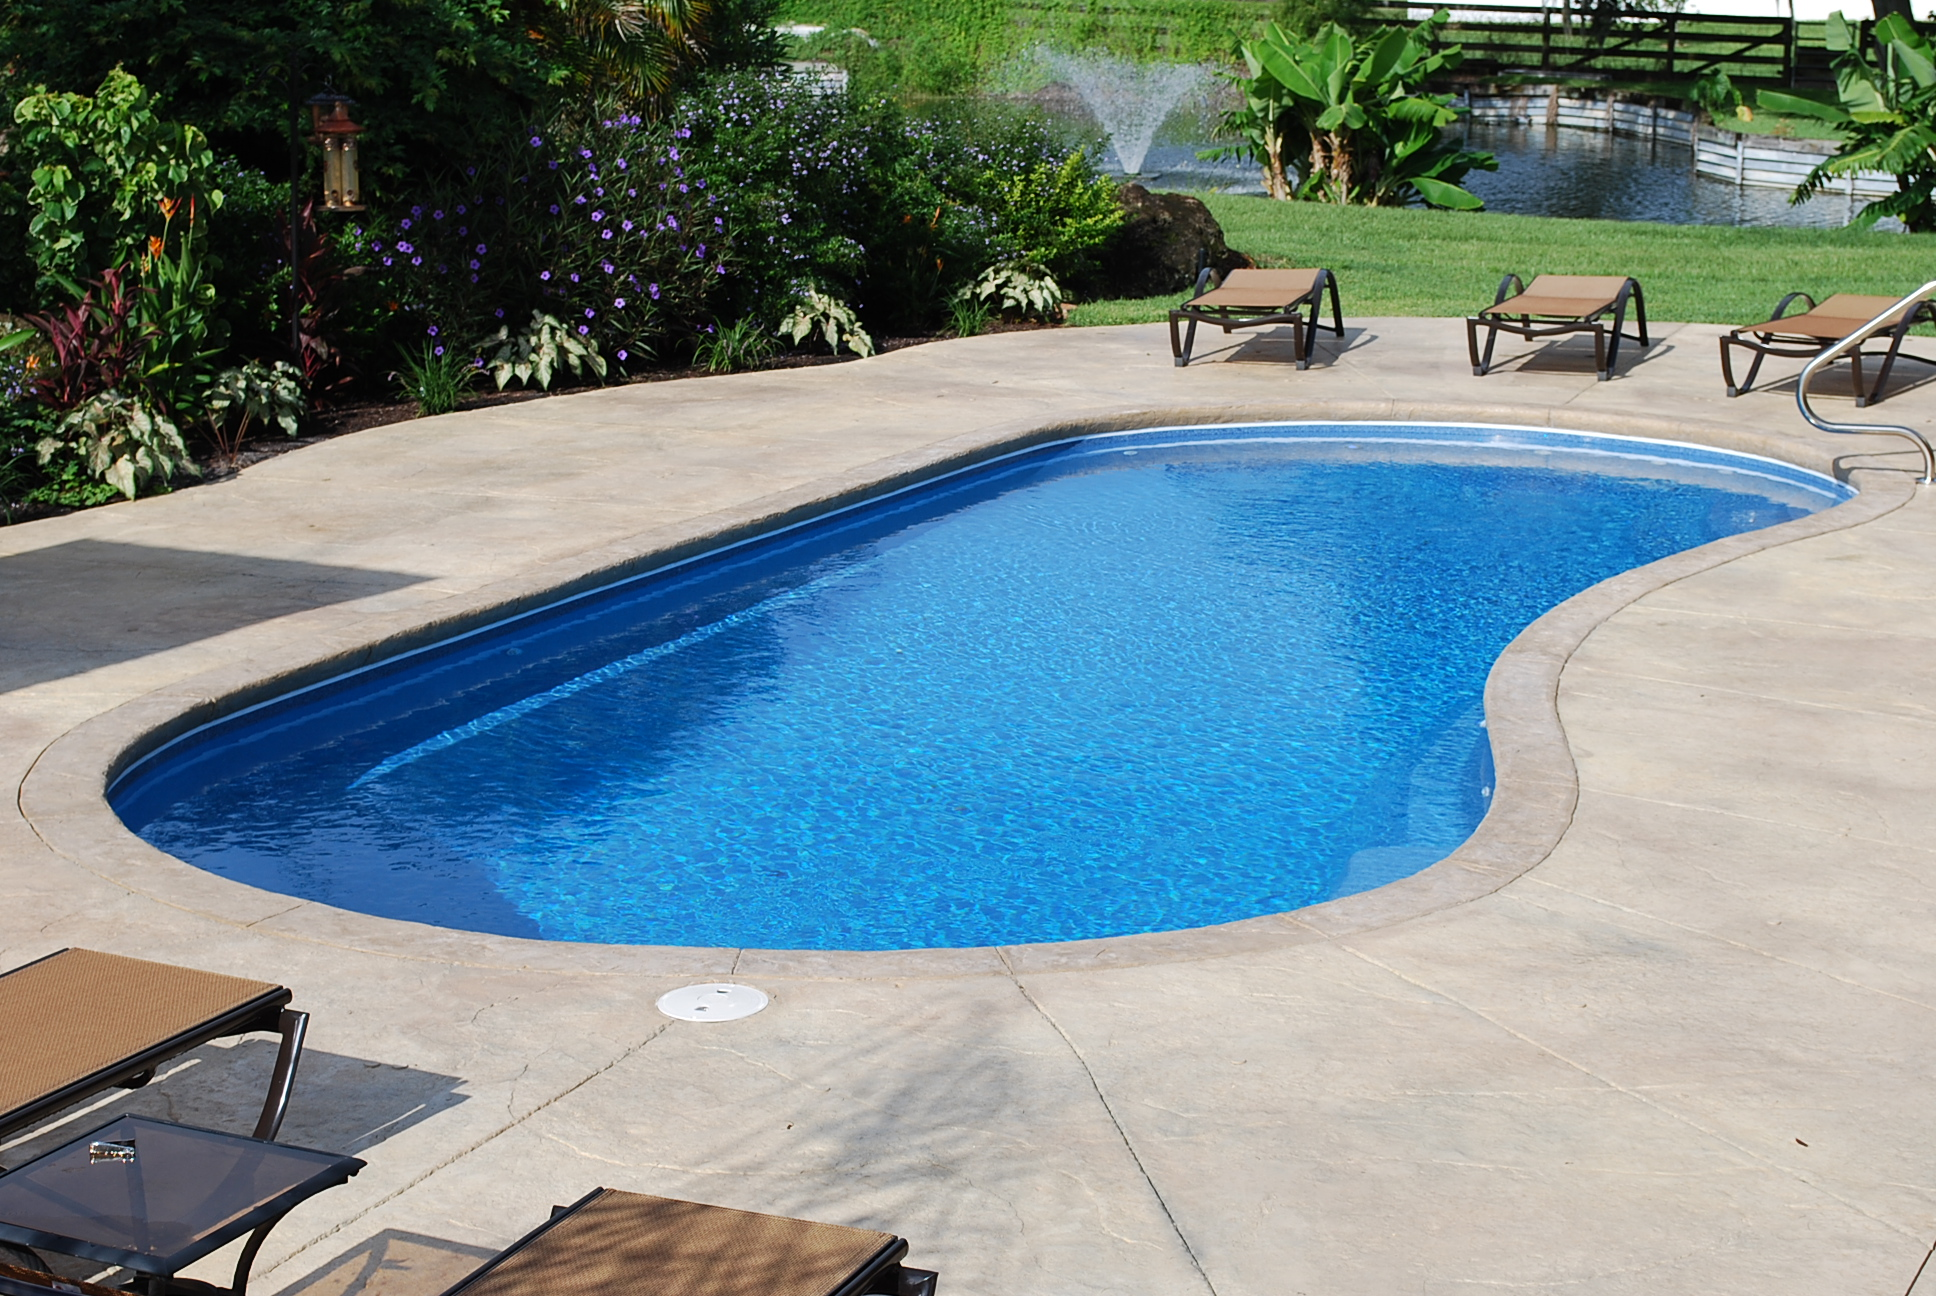 Viking Fiberglass Pools Residential Pool Construction Heartland Pools Lakeland